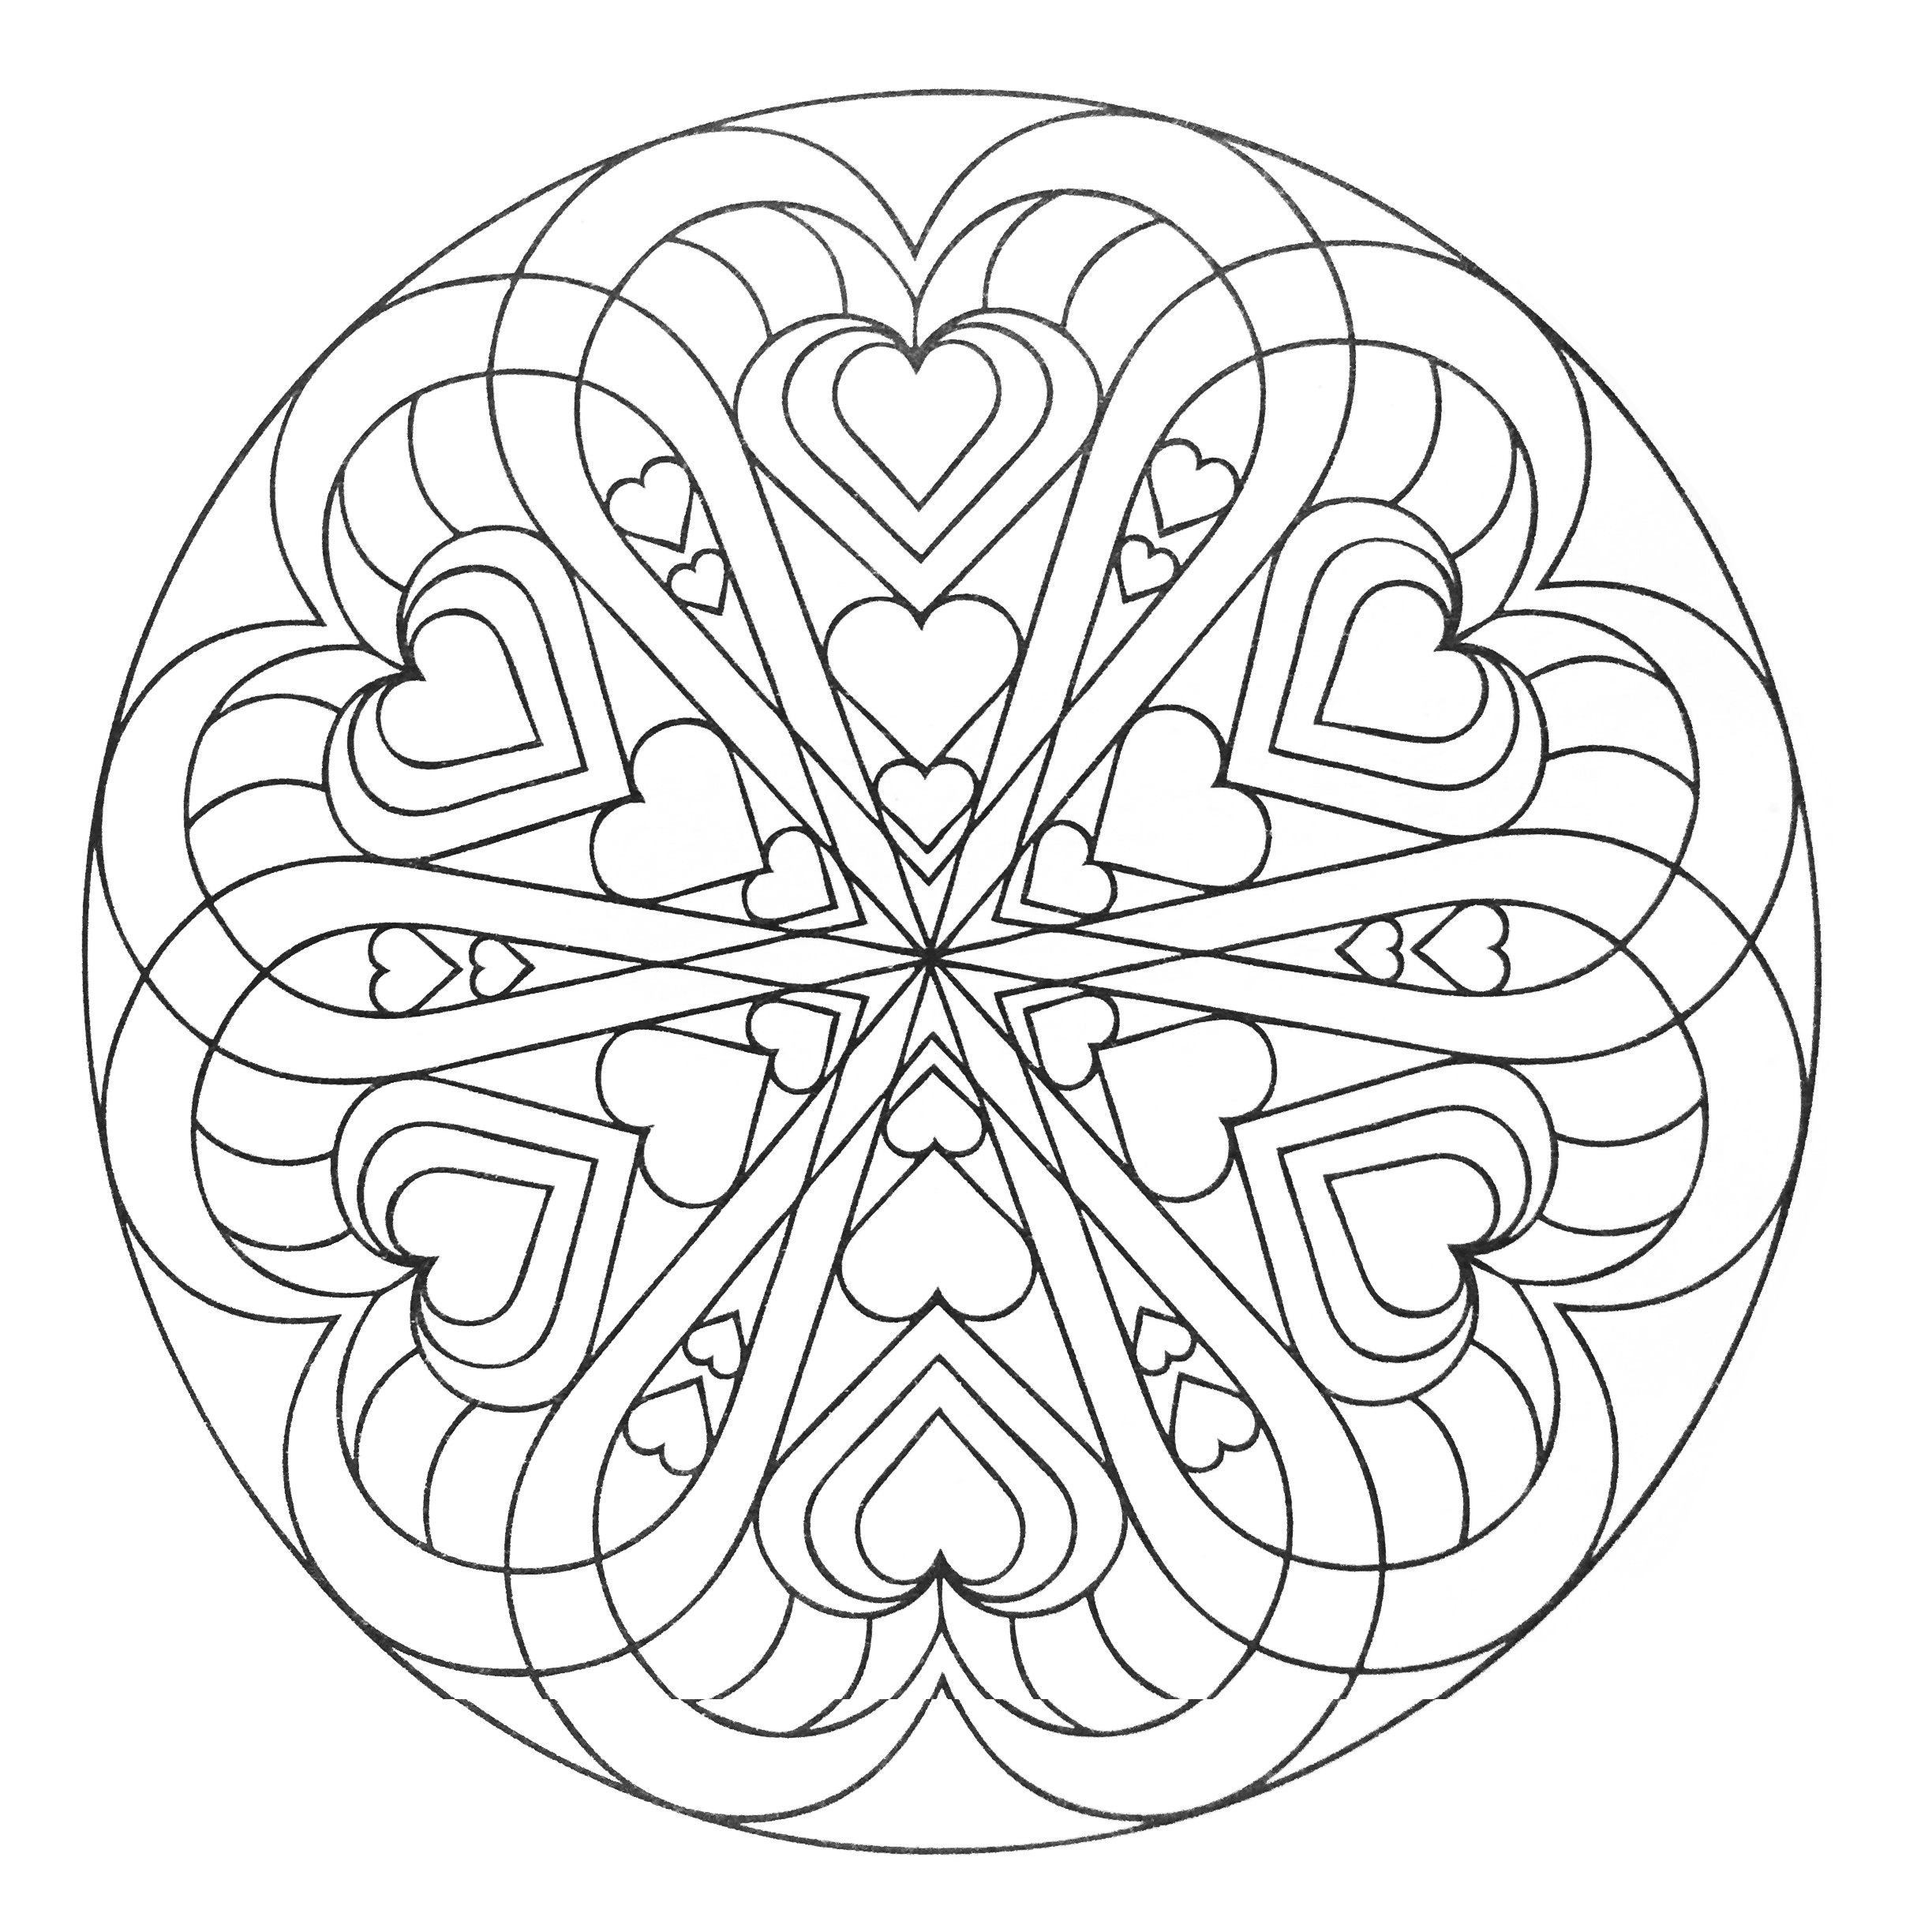 Heart Mandala Coloring Pages Printable Get Coloring Pages Download Download Of Modern Intricate Mandala Coloring Pages Coloring for Good Mandala to Print